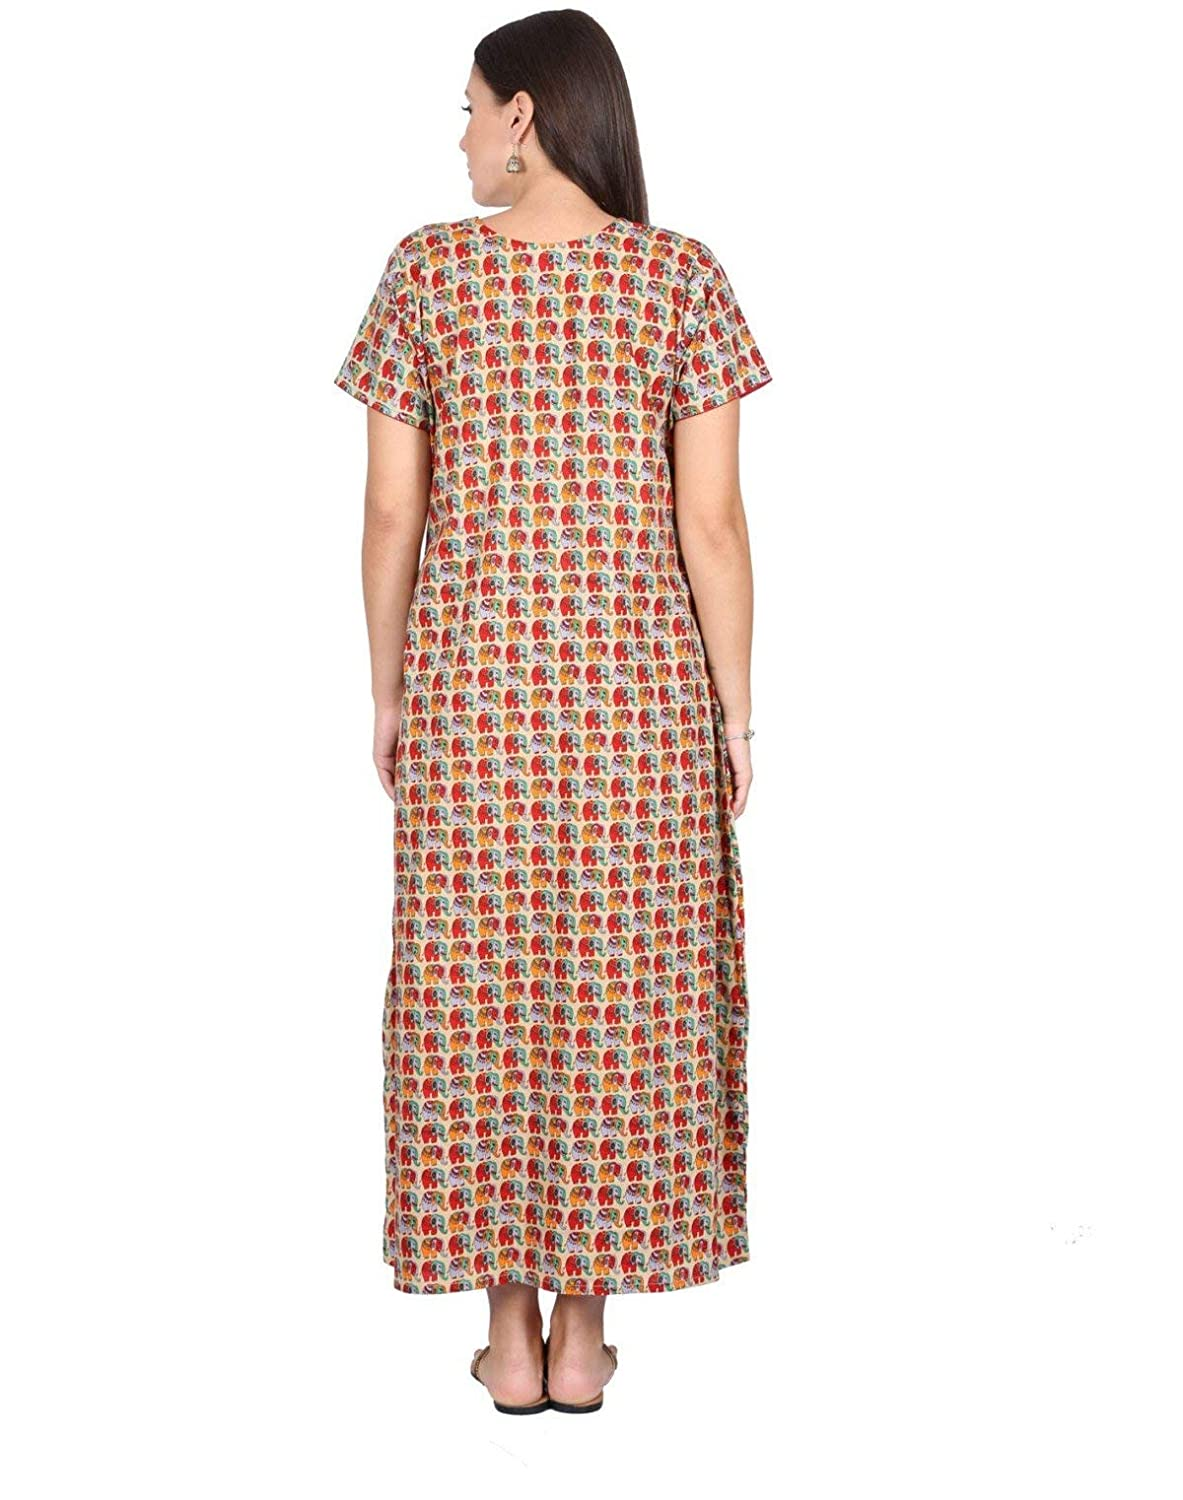 4a7a4a4ea9 Nighty House Womens Full Length Slim Fit Kalamkari 100% Cotton Nightgown   Amazon.in  Clothing   Accessories